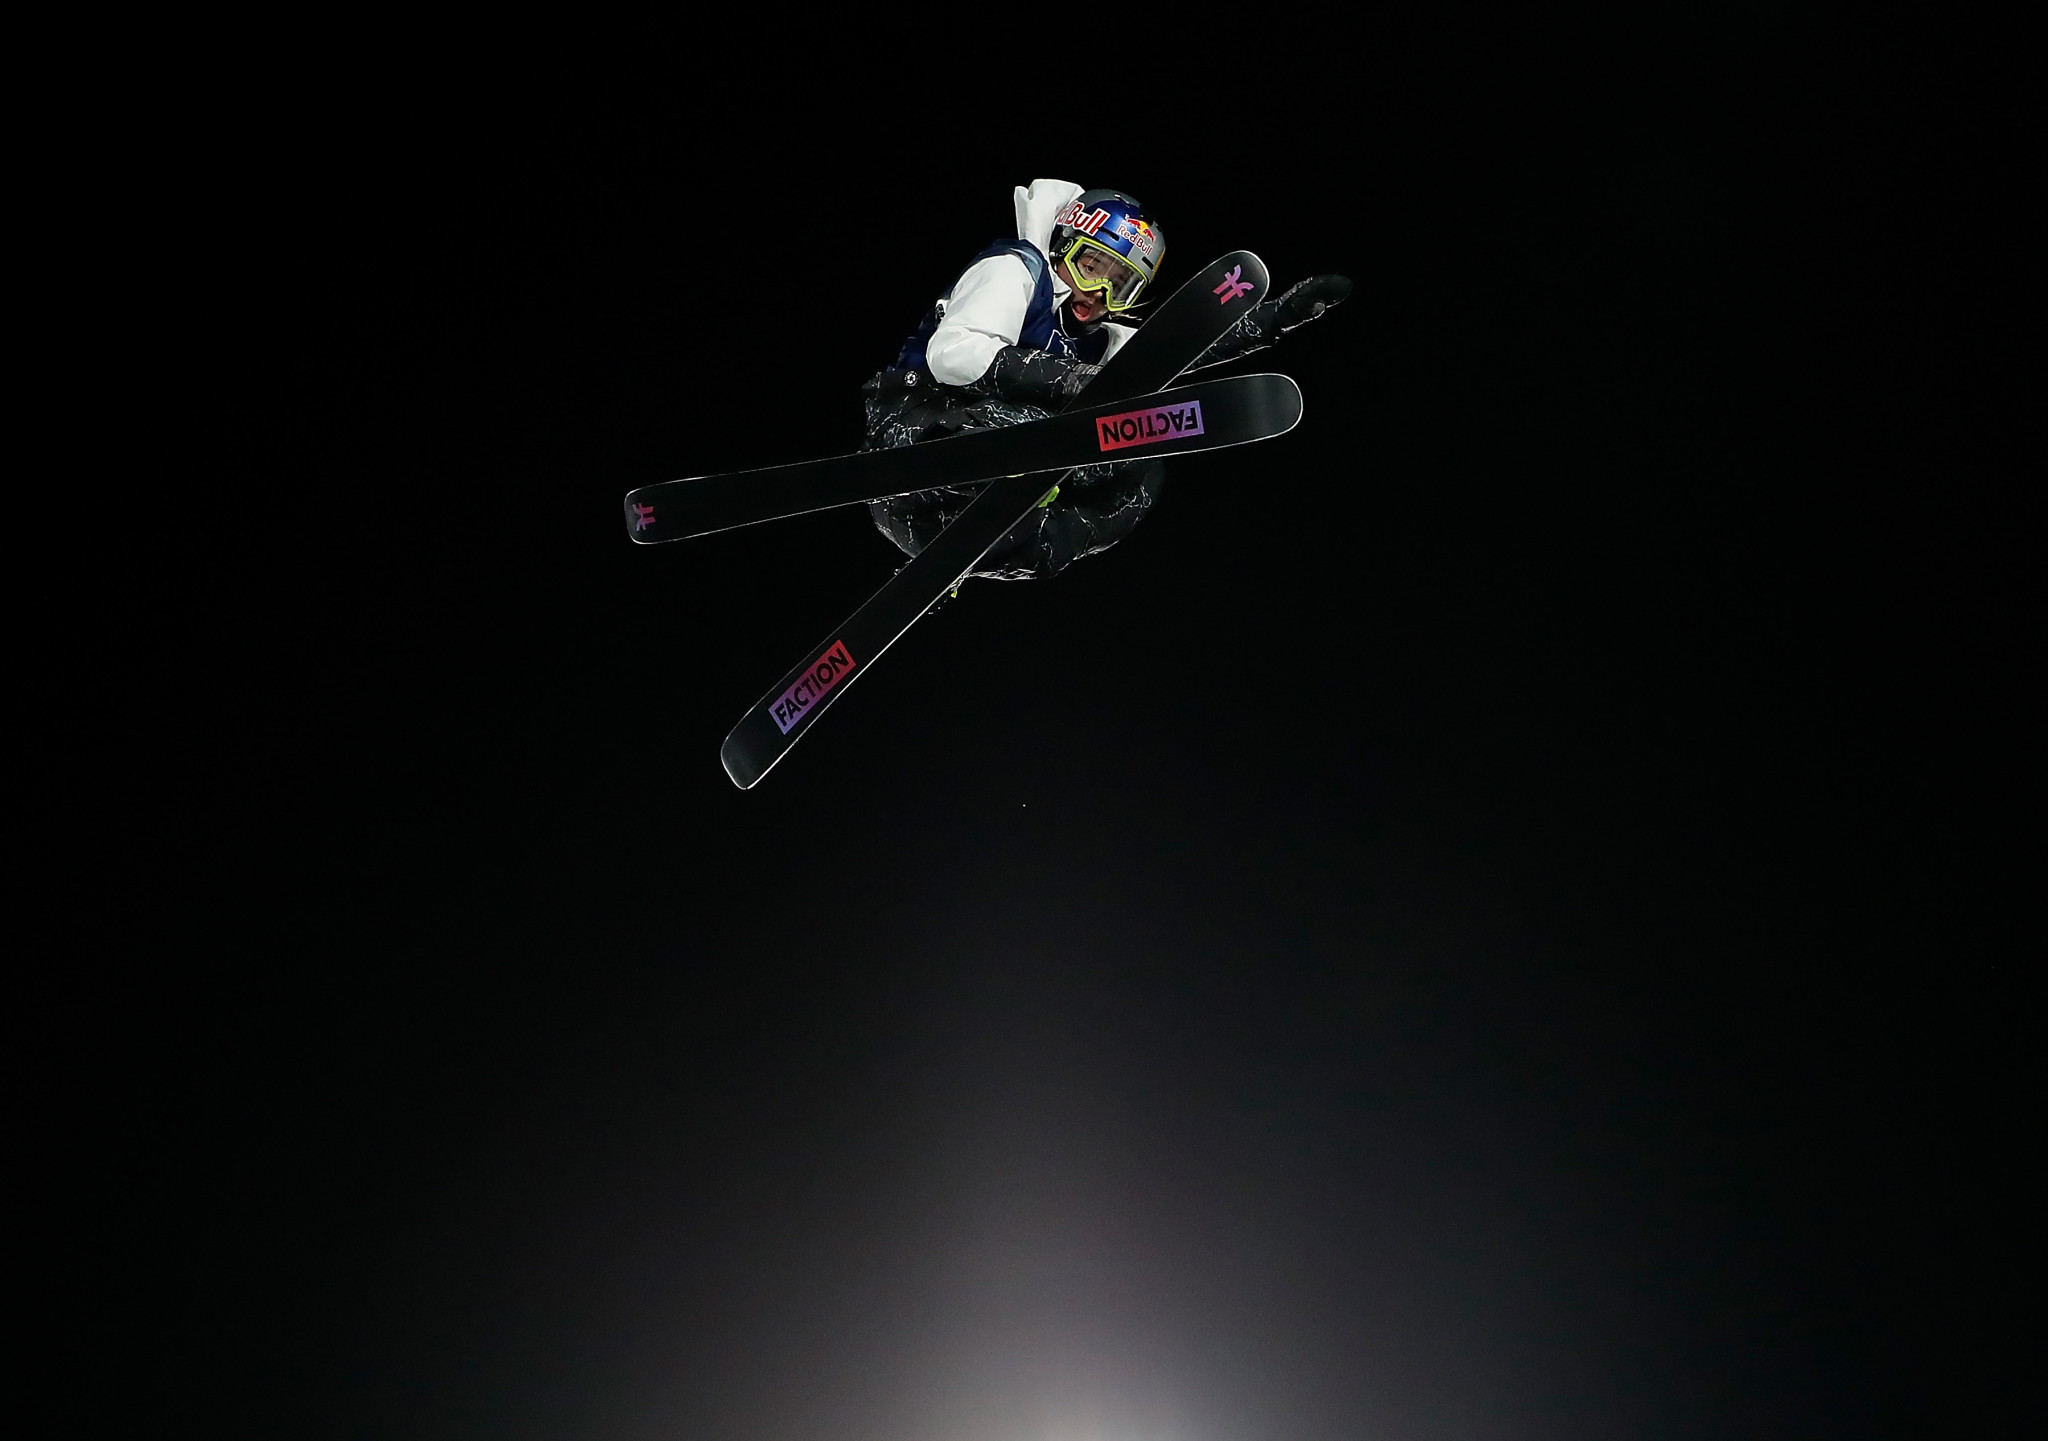 Mathilde Gremaud of Switzerland won the FIS Freestyle Ski World Cup event in Atlanta ©Getty Images